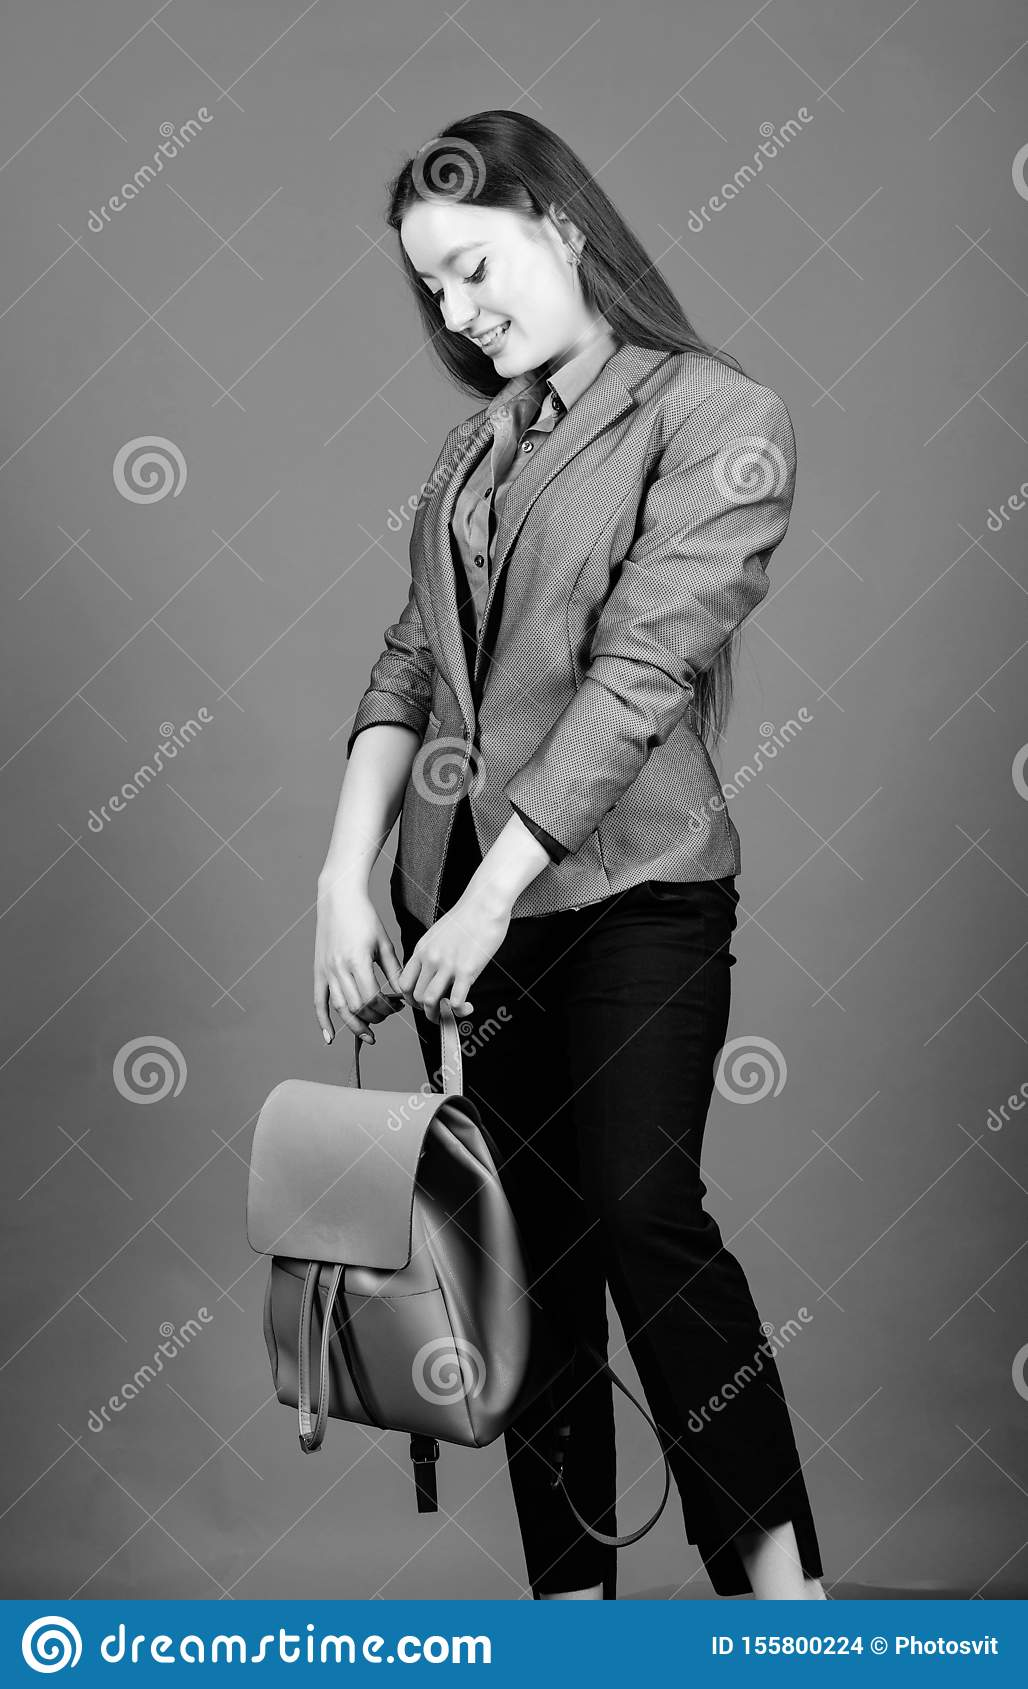 Girl student in formal clothes. female bag fashion. business. Shool girl with knapsack. student life. Smart beauty. Nerd